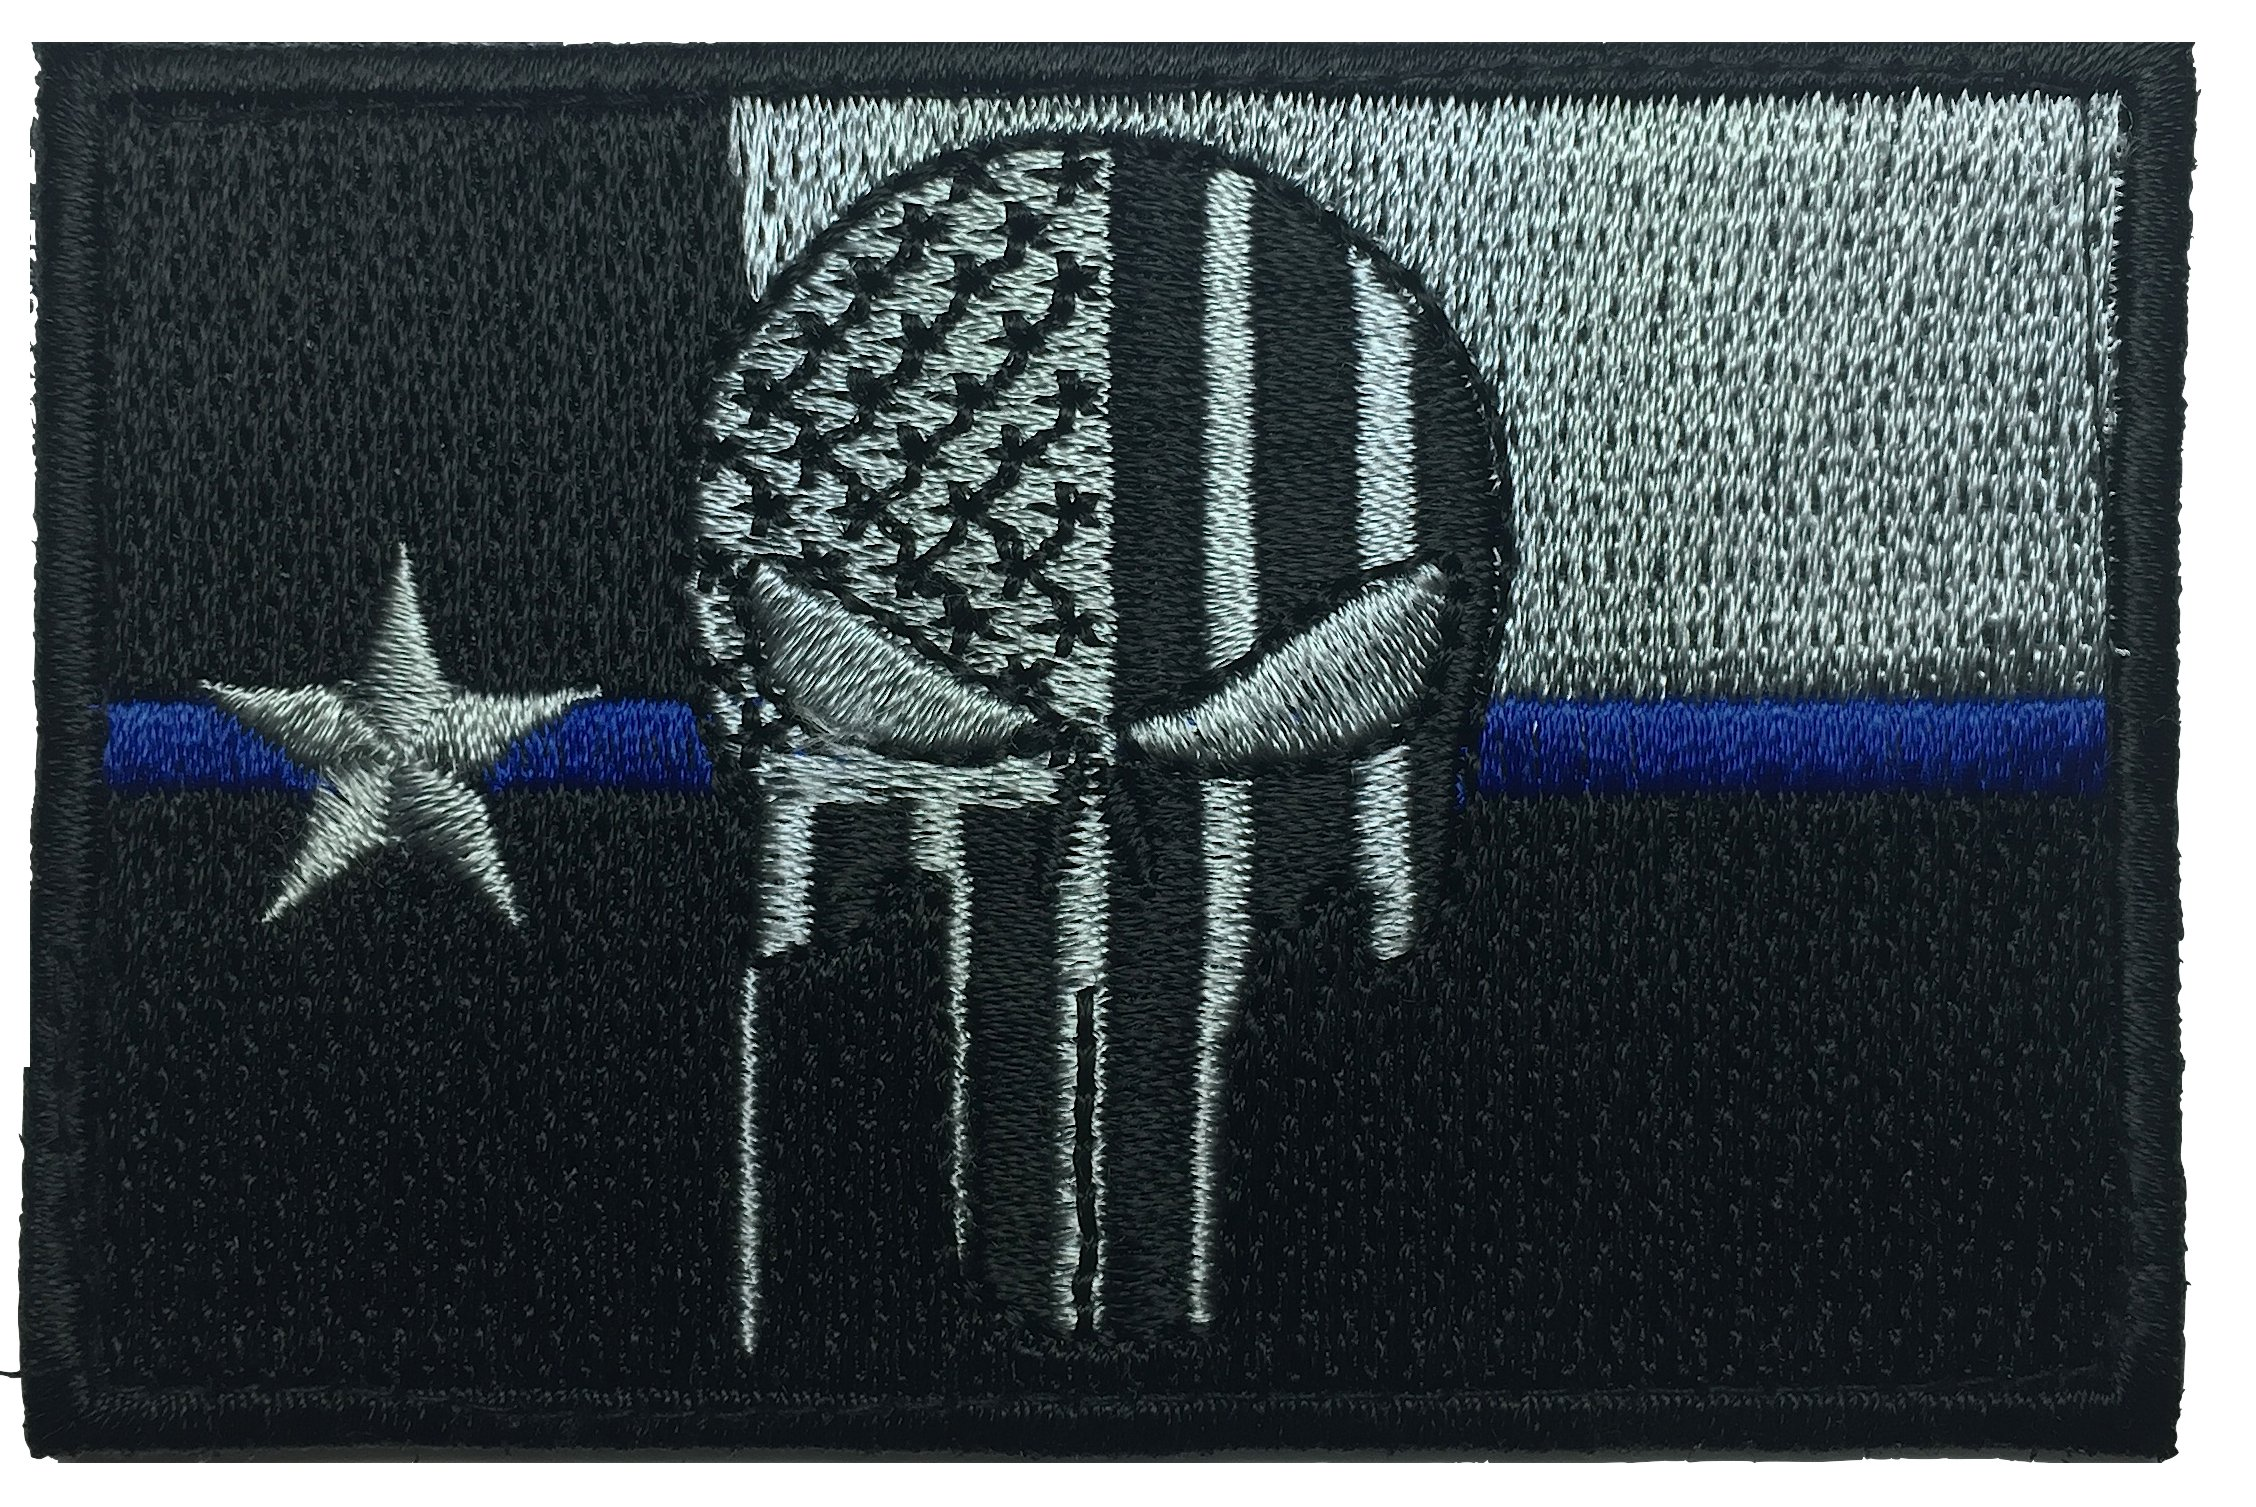 a84ae207b46e26 Patch Squad Men's Texas Flag Punisher Flag Patches (Black/Silver Blue Line)